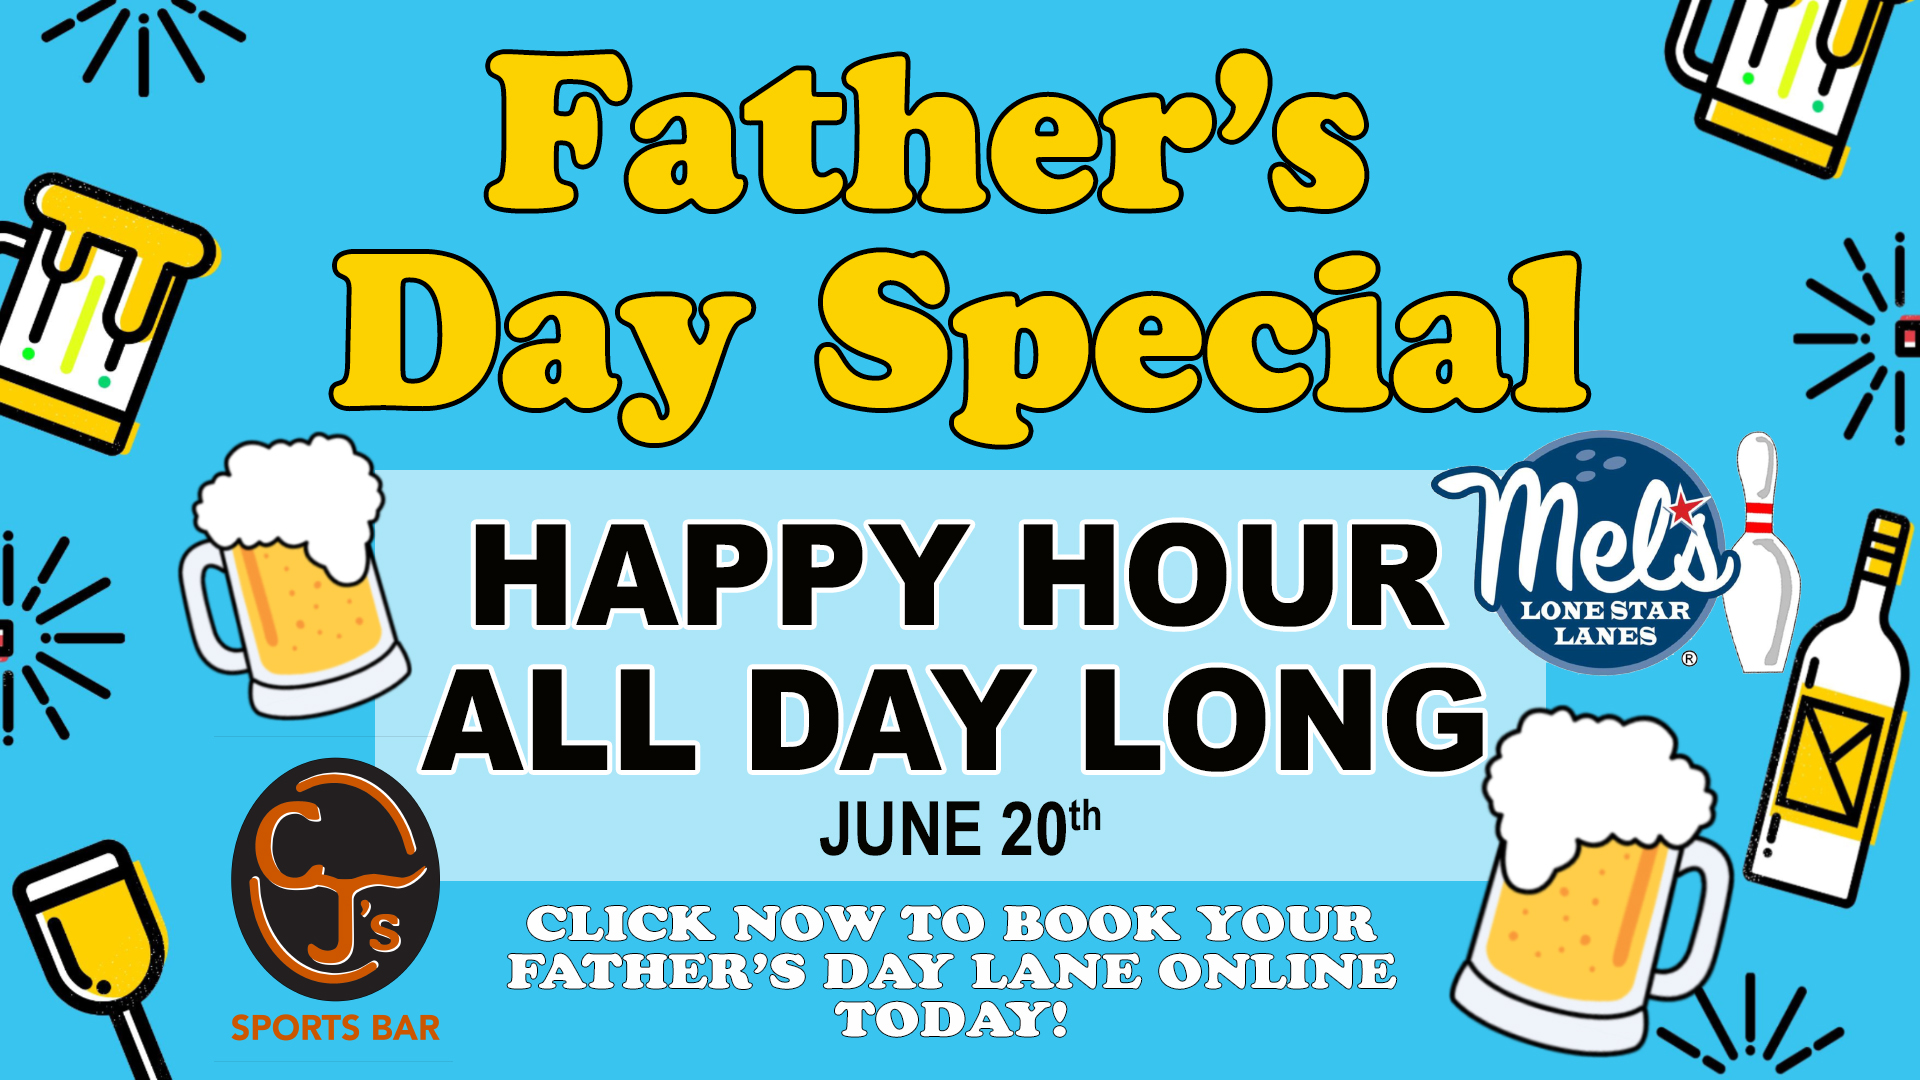 WEBSITE_FATHERS_DAY